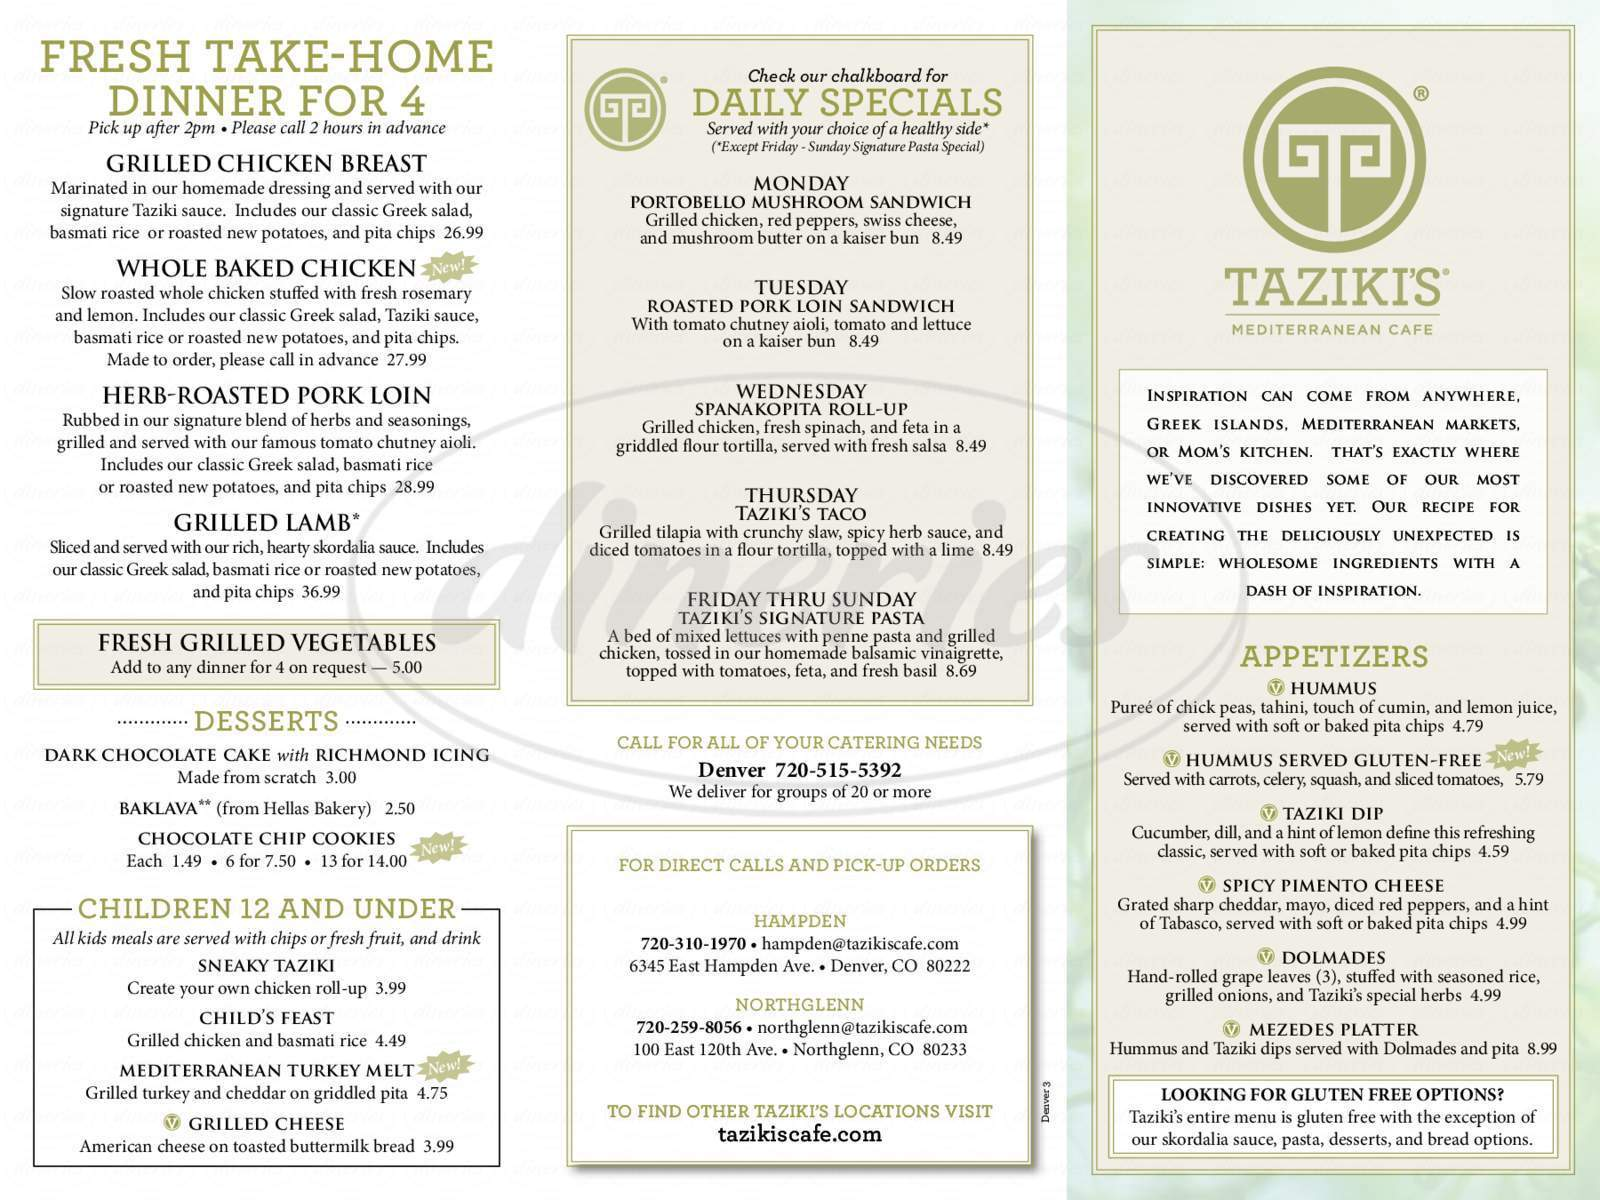 menu for Taziki's Mediterranean Cafe